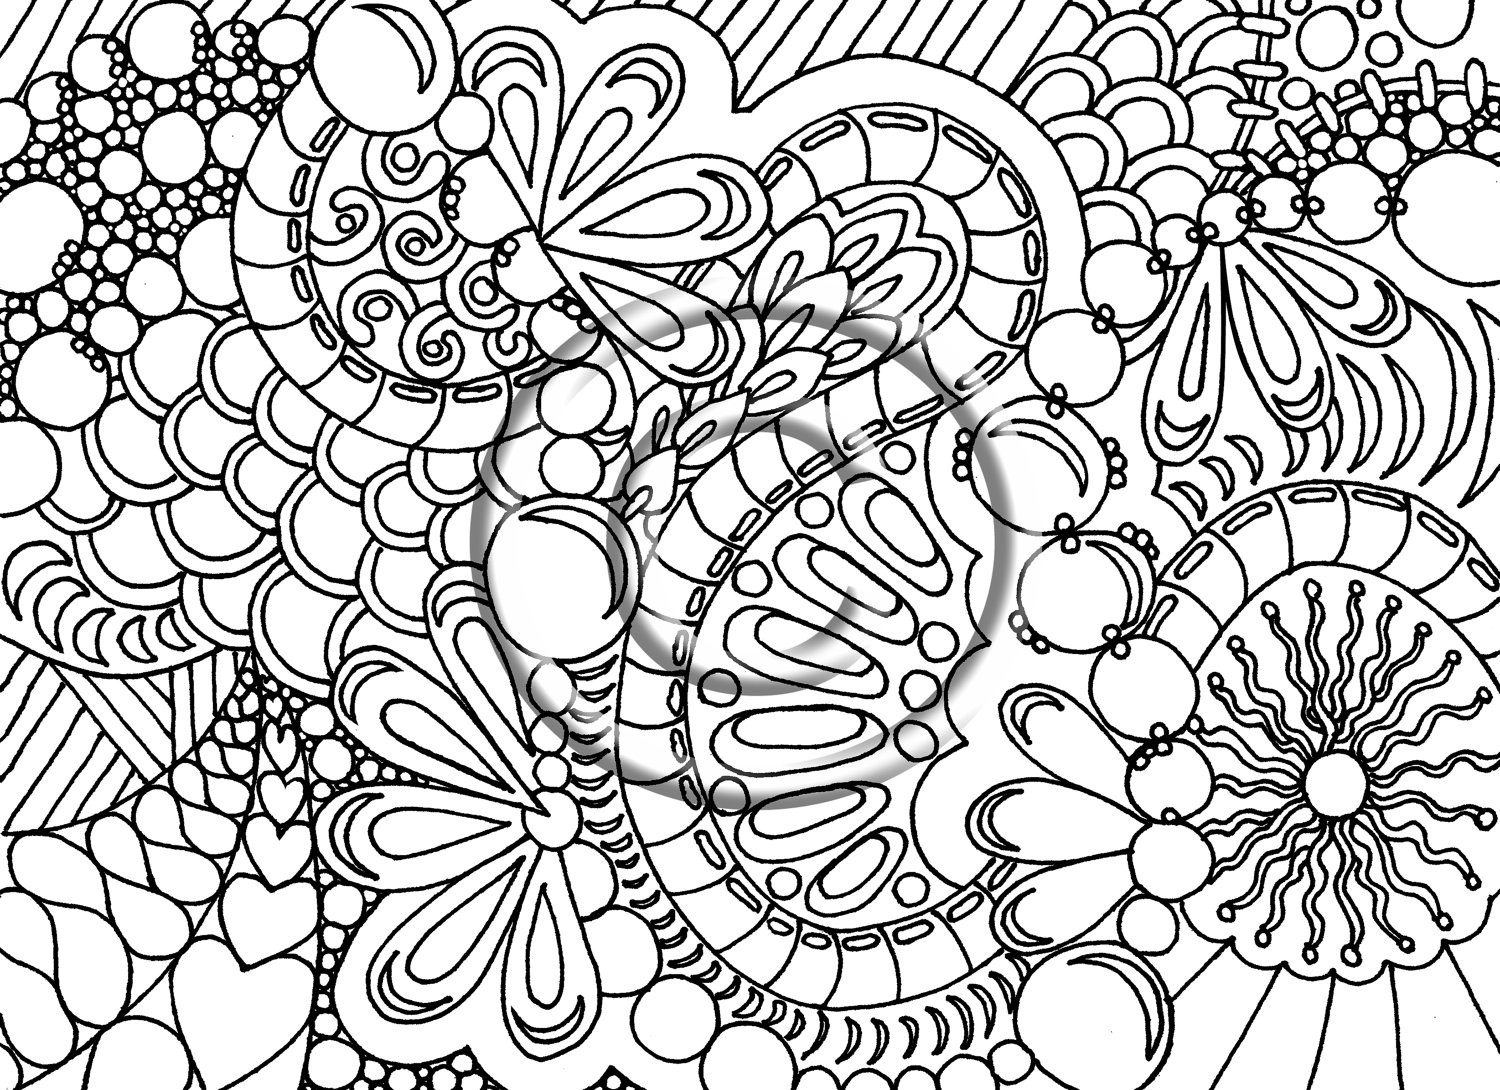 Difficult Color By Number Coloring Pages For Adults  Coloring Pages Hard Coloring Pages For Teenagers